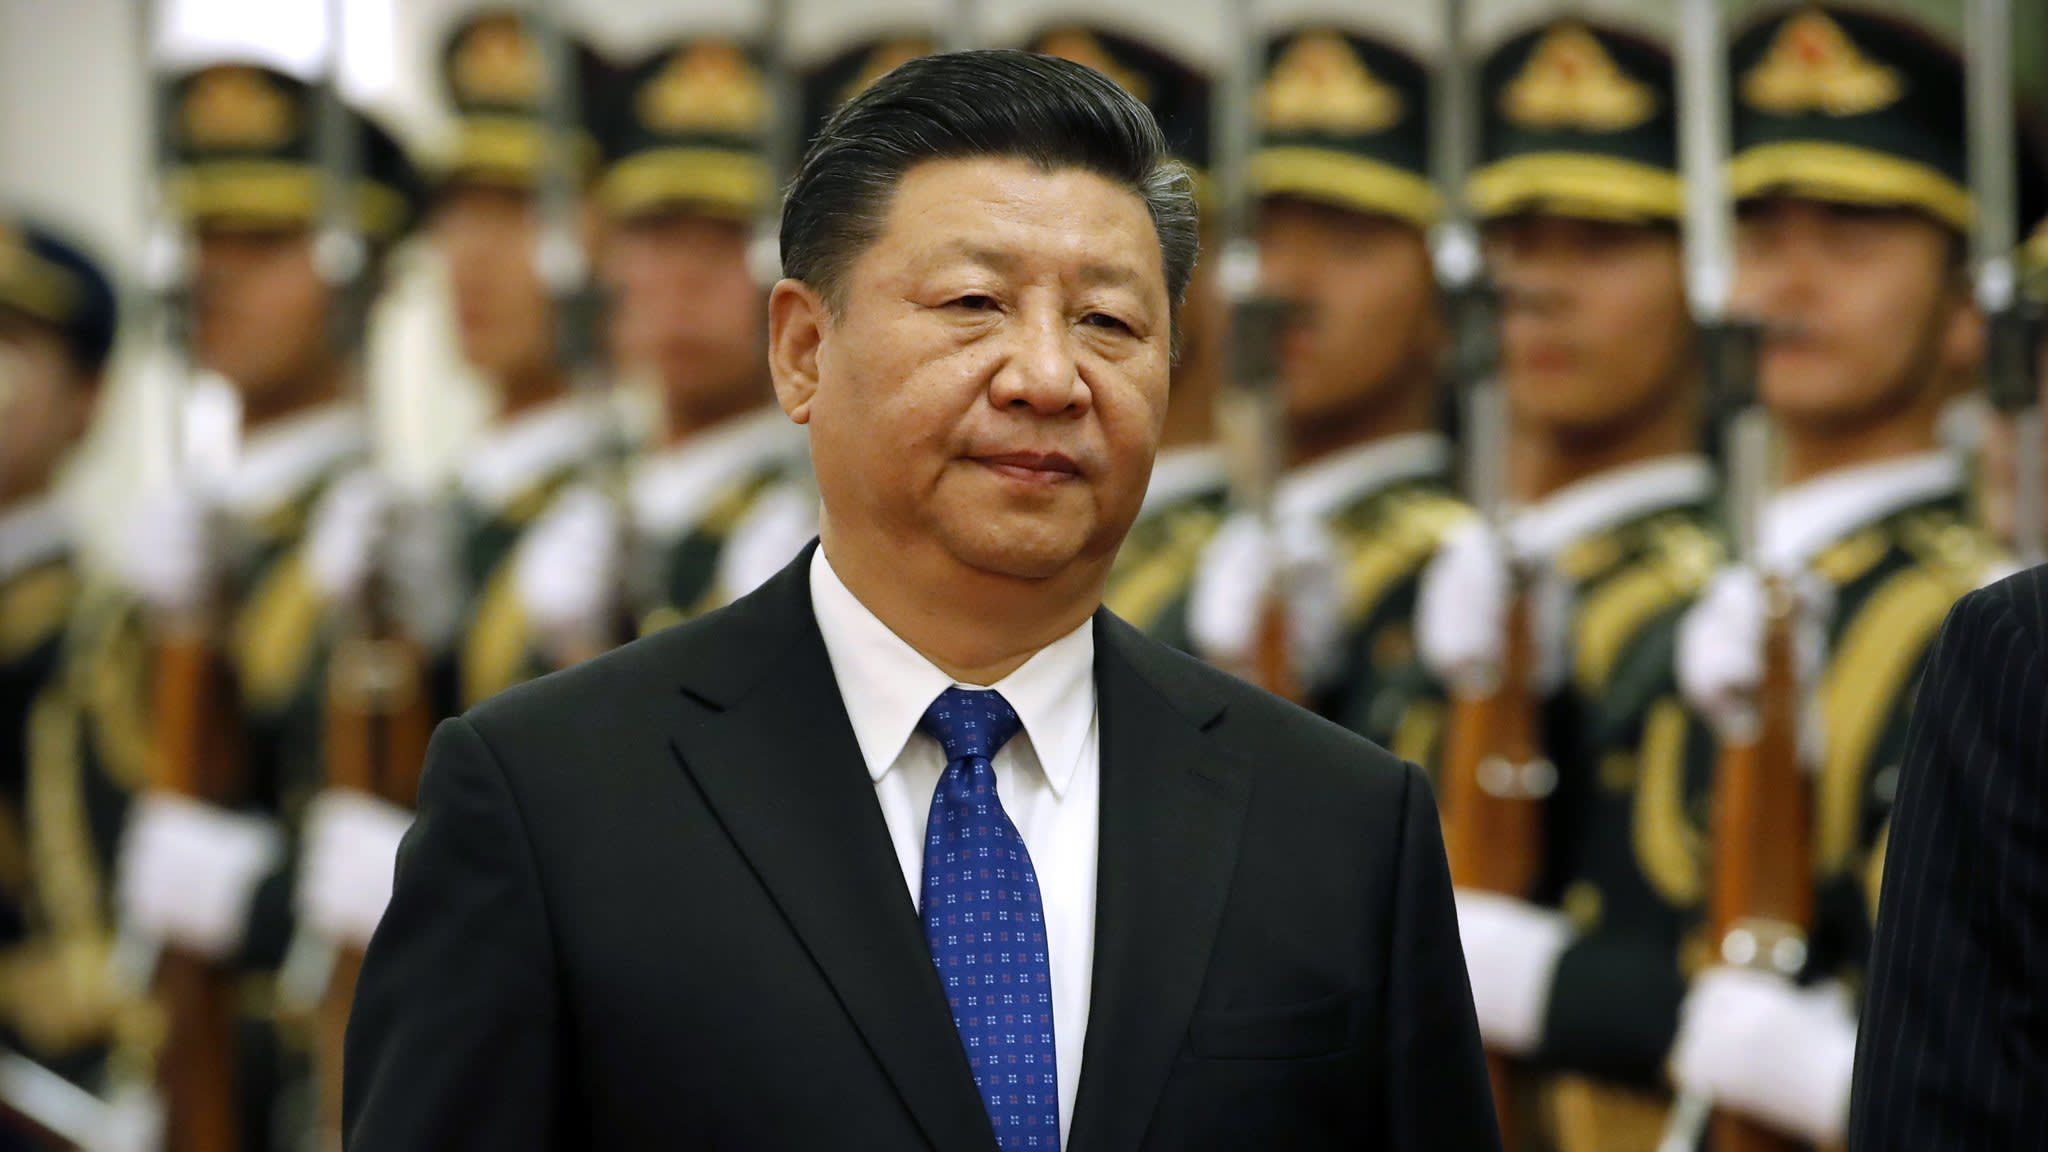 Xi Jinping to outline economic reforms amid trade tension